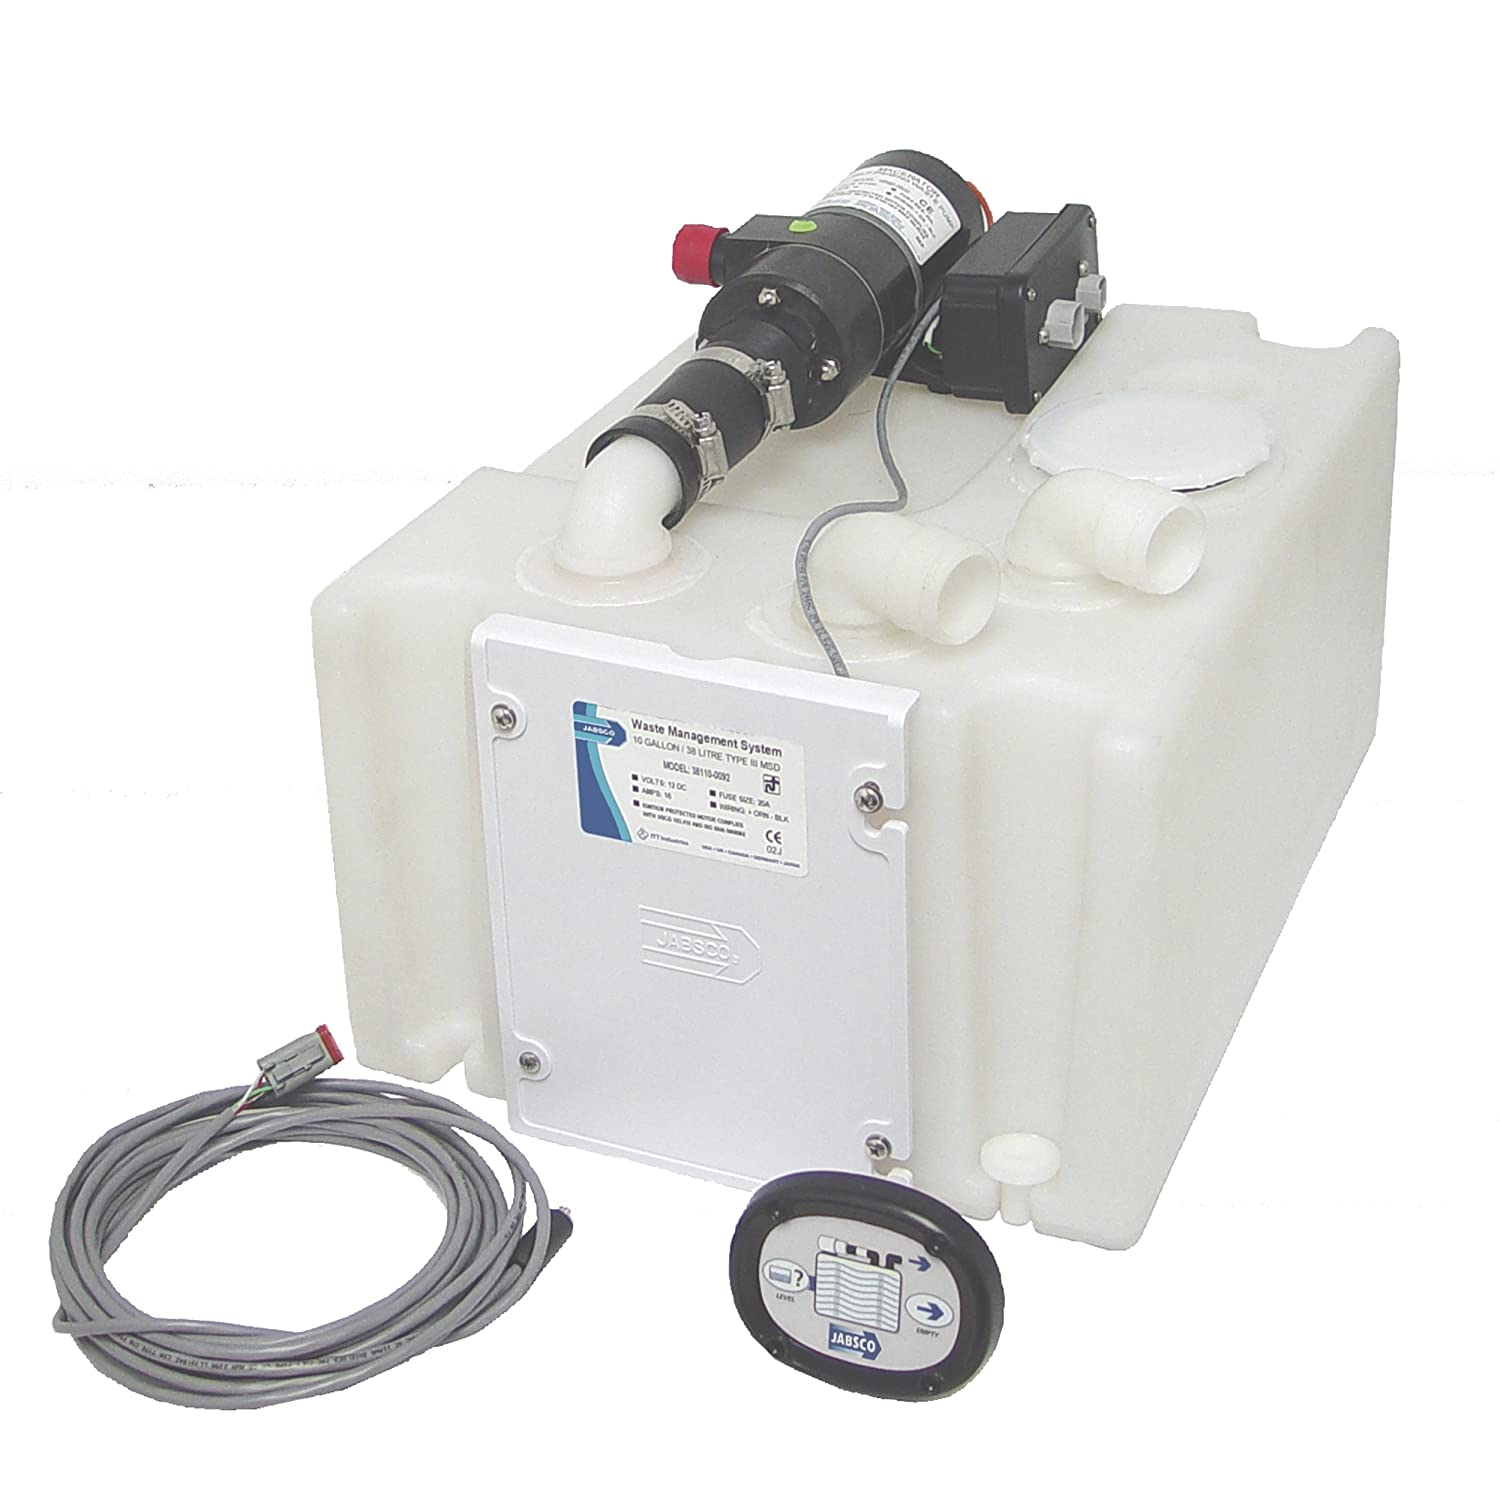 Amazon.com : Jabsco 38110-0092 Marine Waste Holding Tank and Pump  Management System (12-Volt, 16-Amp) : Boat Plumbing Items : Sports &  Outdoors